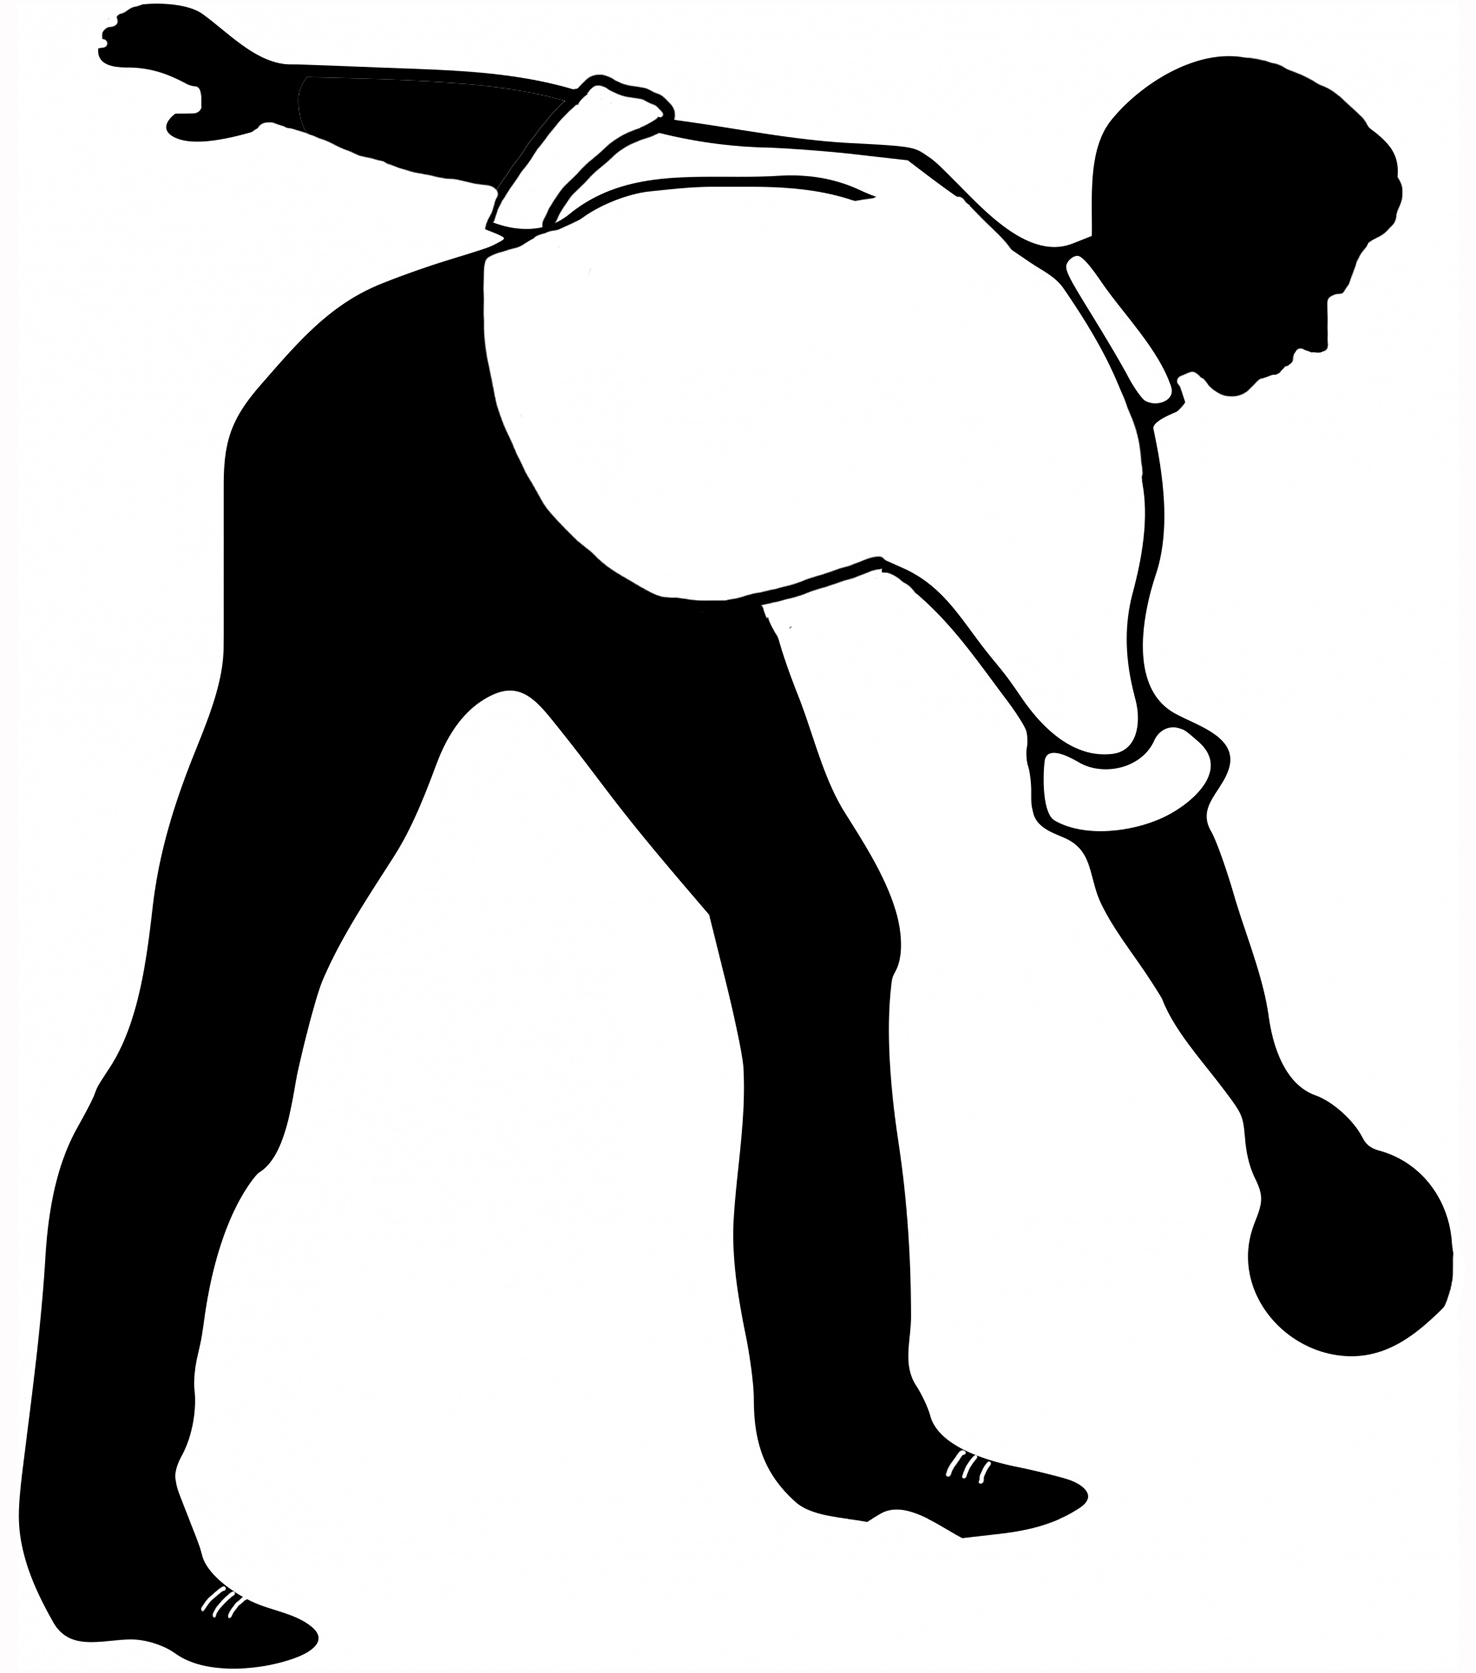 ten bowling silhouette of man